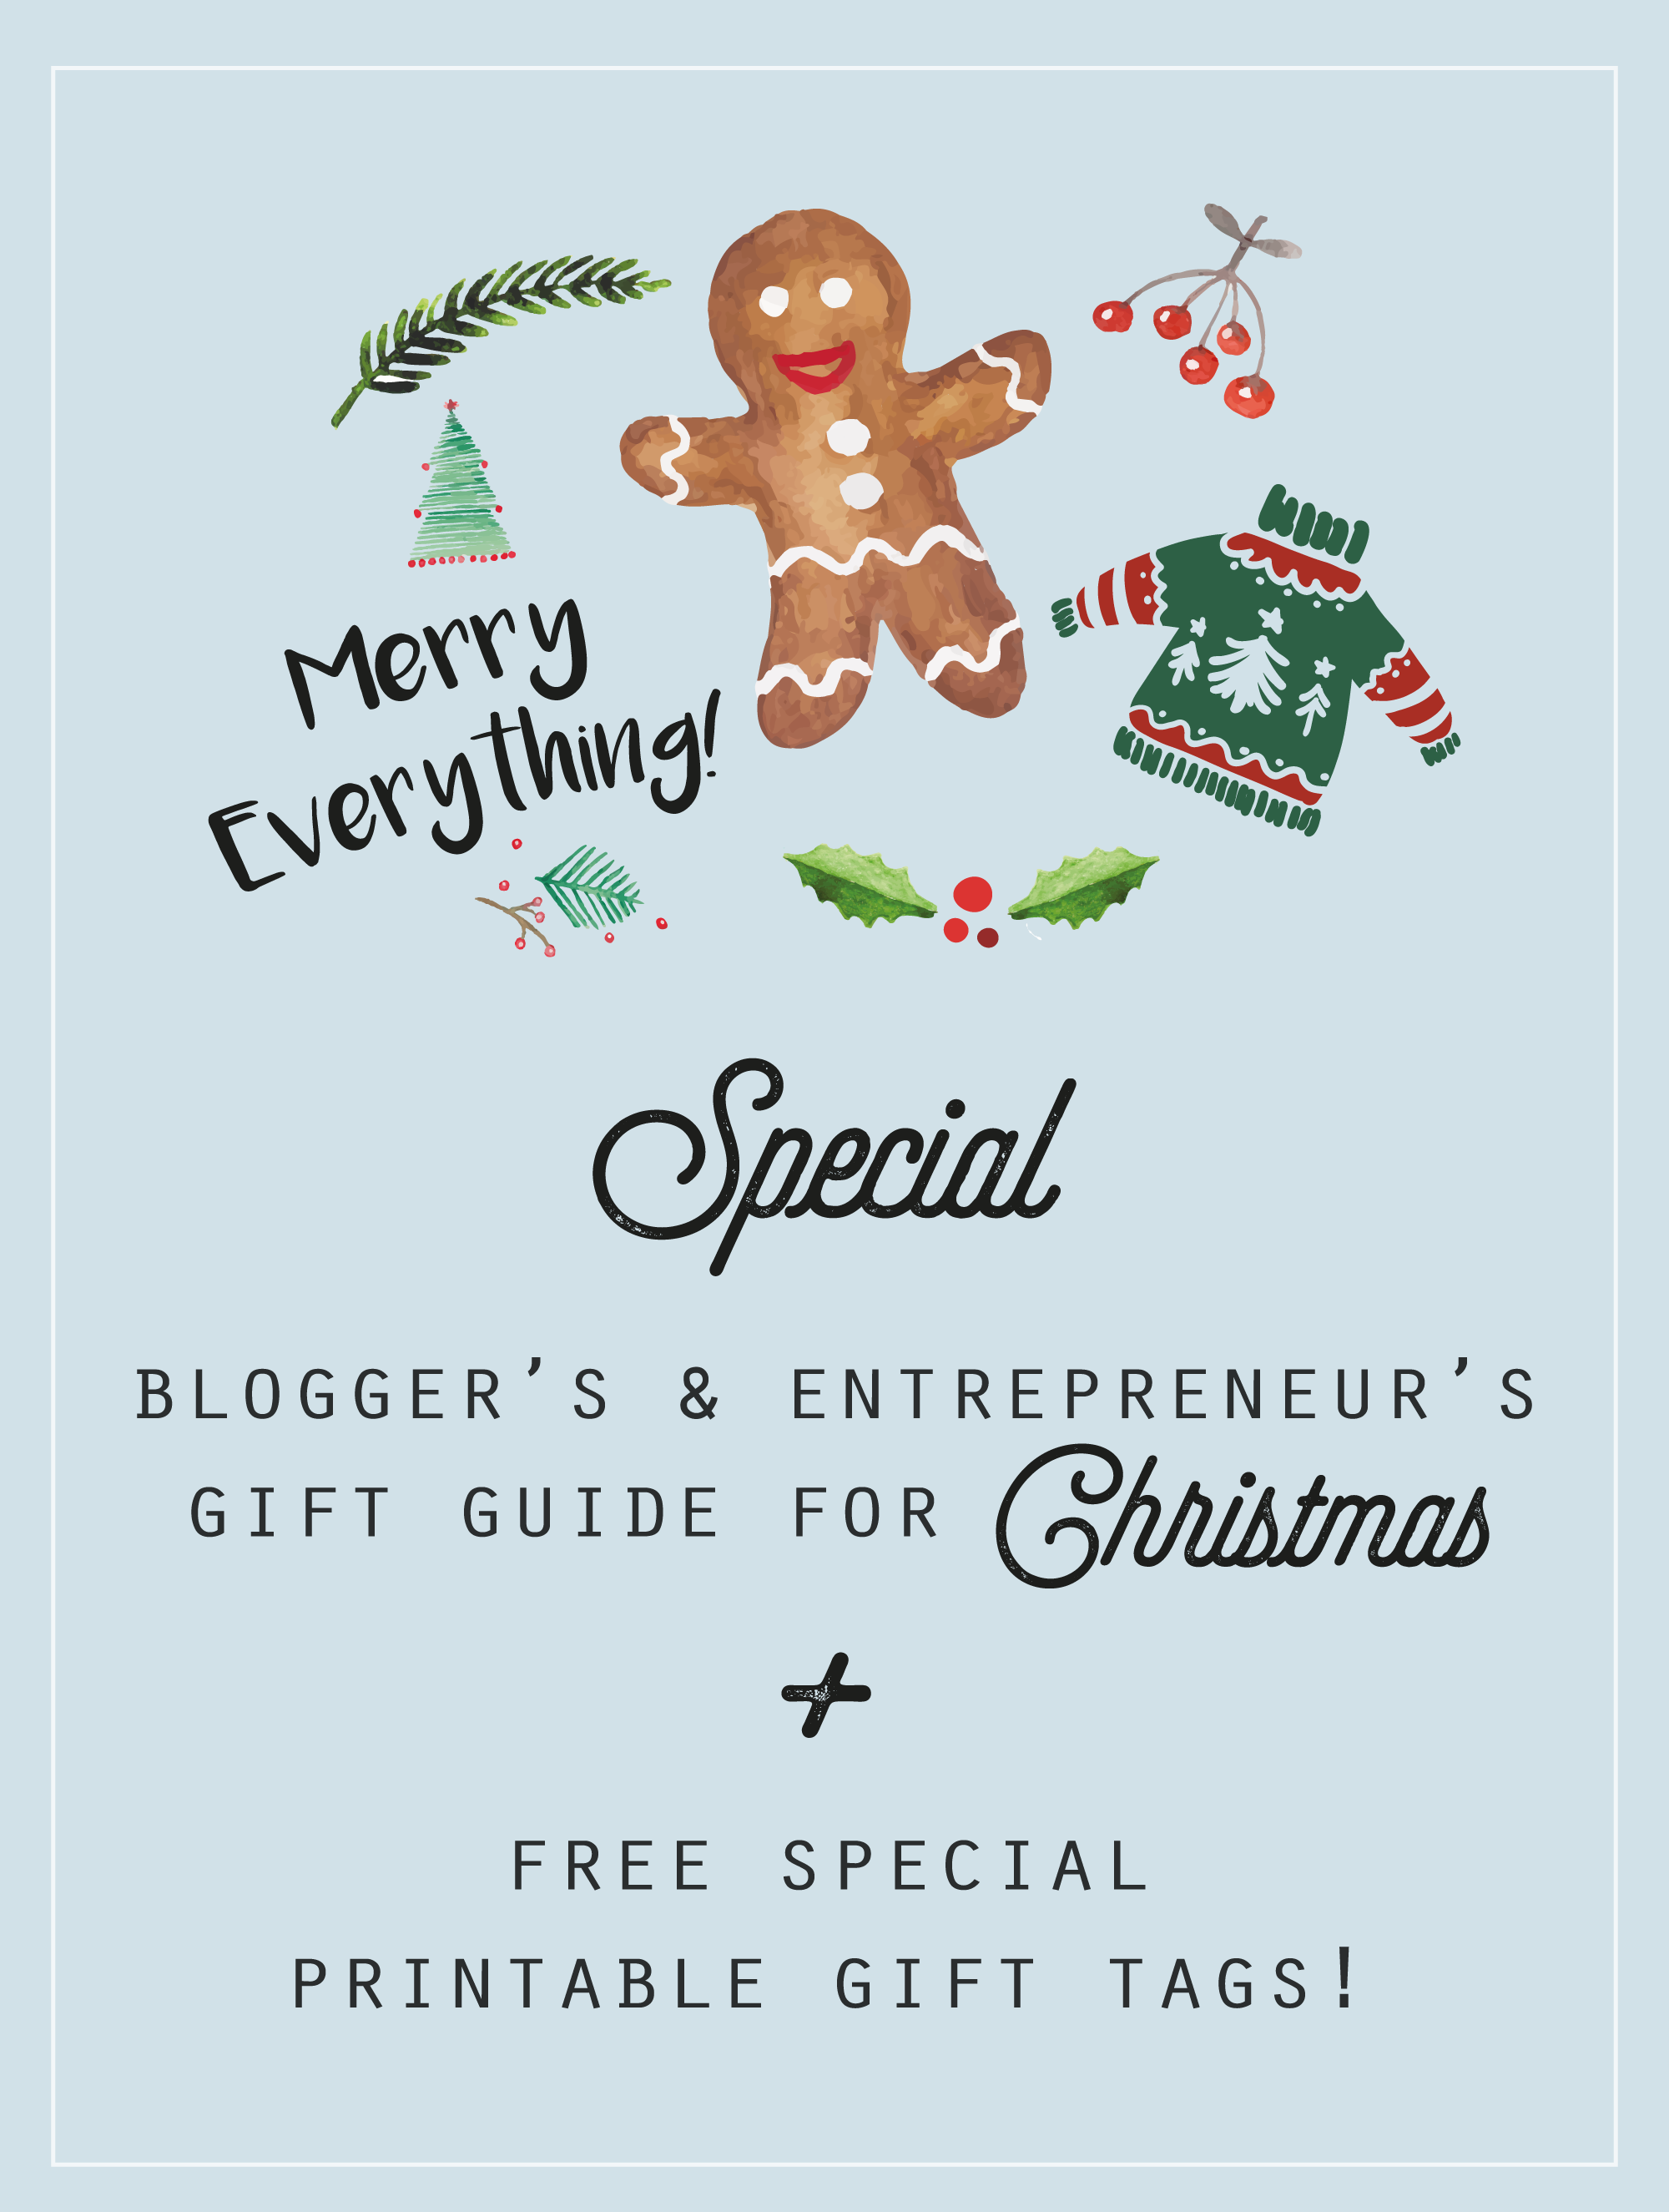 Bloggers entrepreneurs gift guide for christmas free special bloggers entrepreneurs for christmas free printable gift tags check donttellanyone negle Gallery